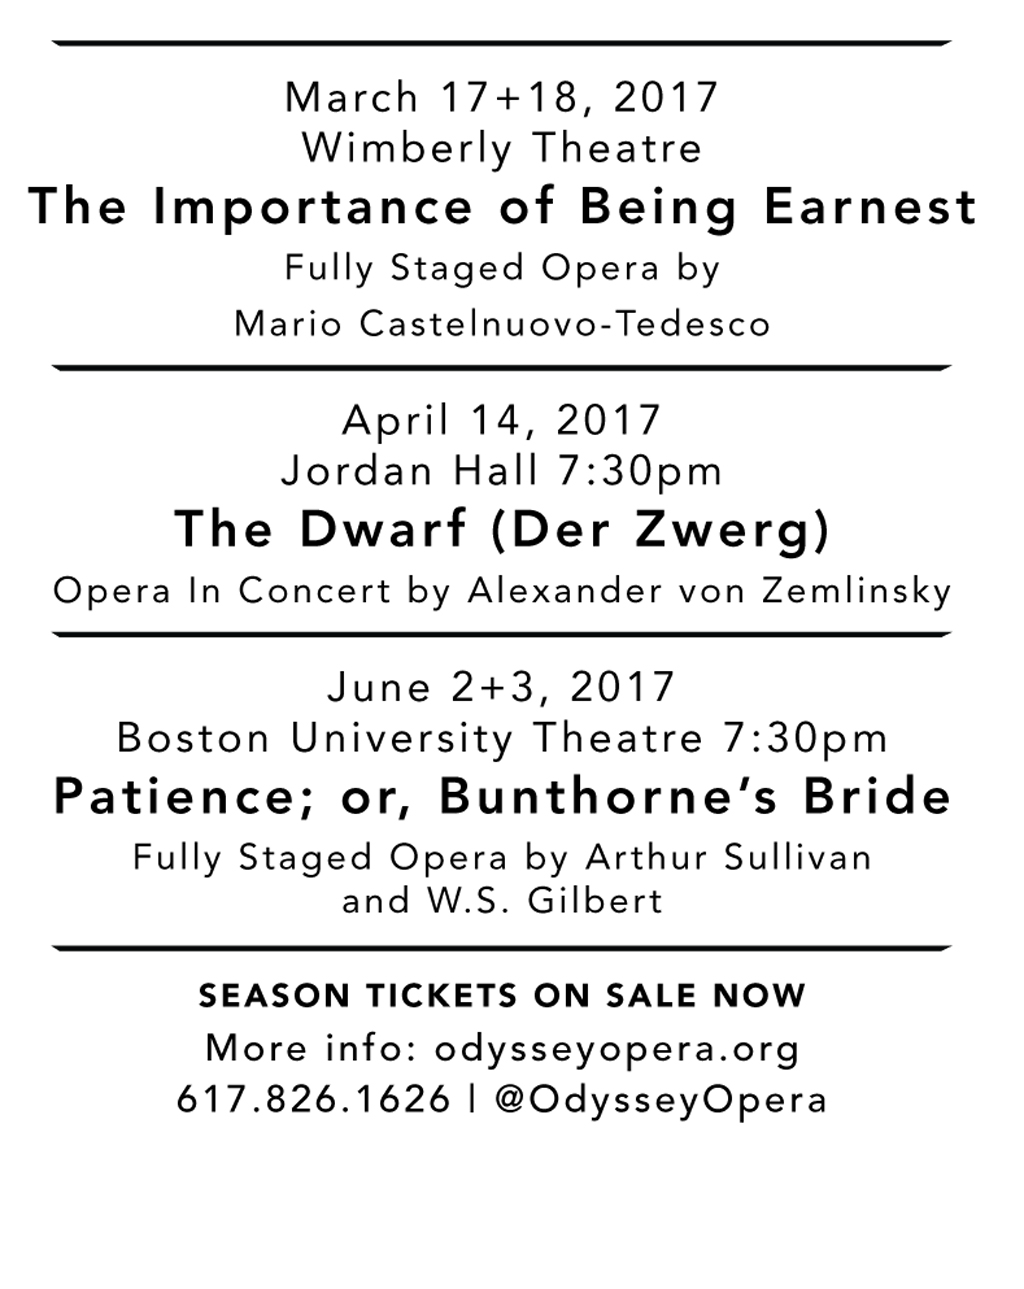 March 17-18, The Importance of Being Earnest; April 14, Der Zwerg; June 2-3, Patience, or, Bunthorne's Bride. For more information and tickets, call 617-826-1626.